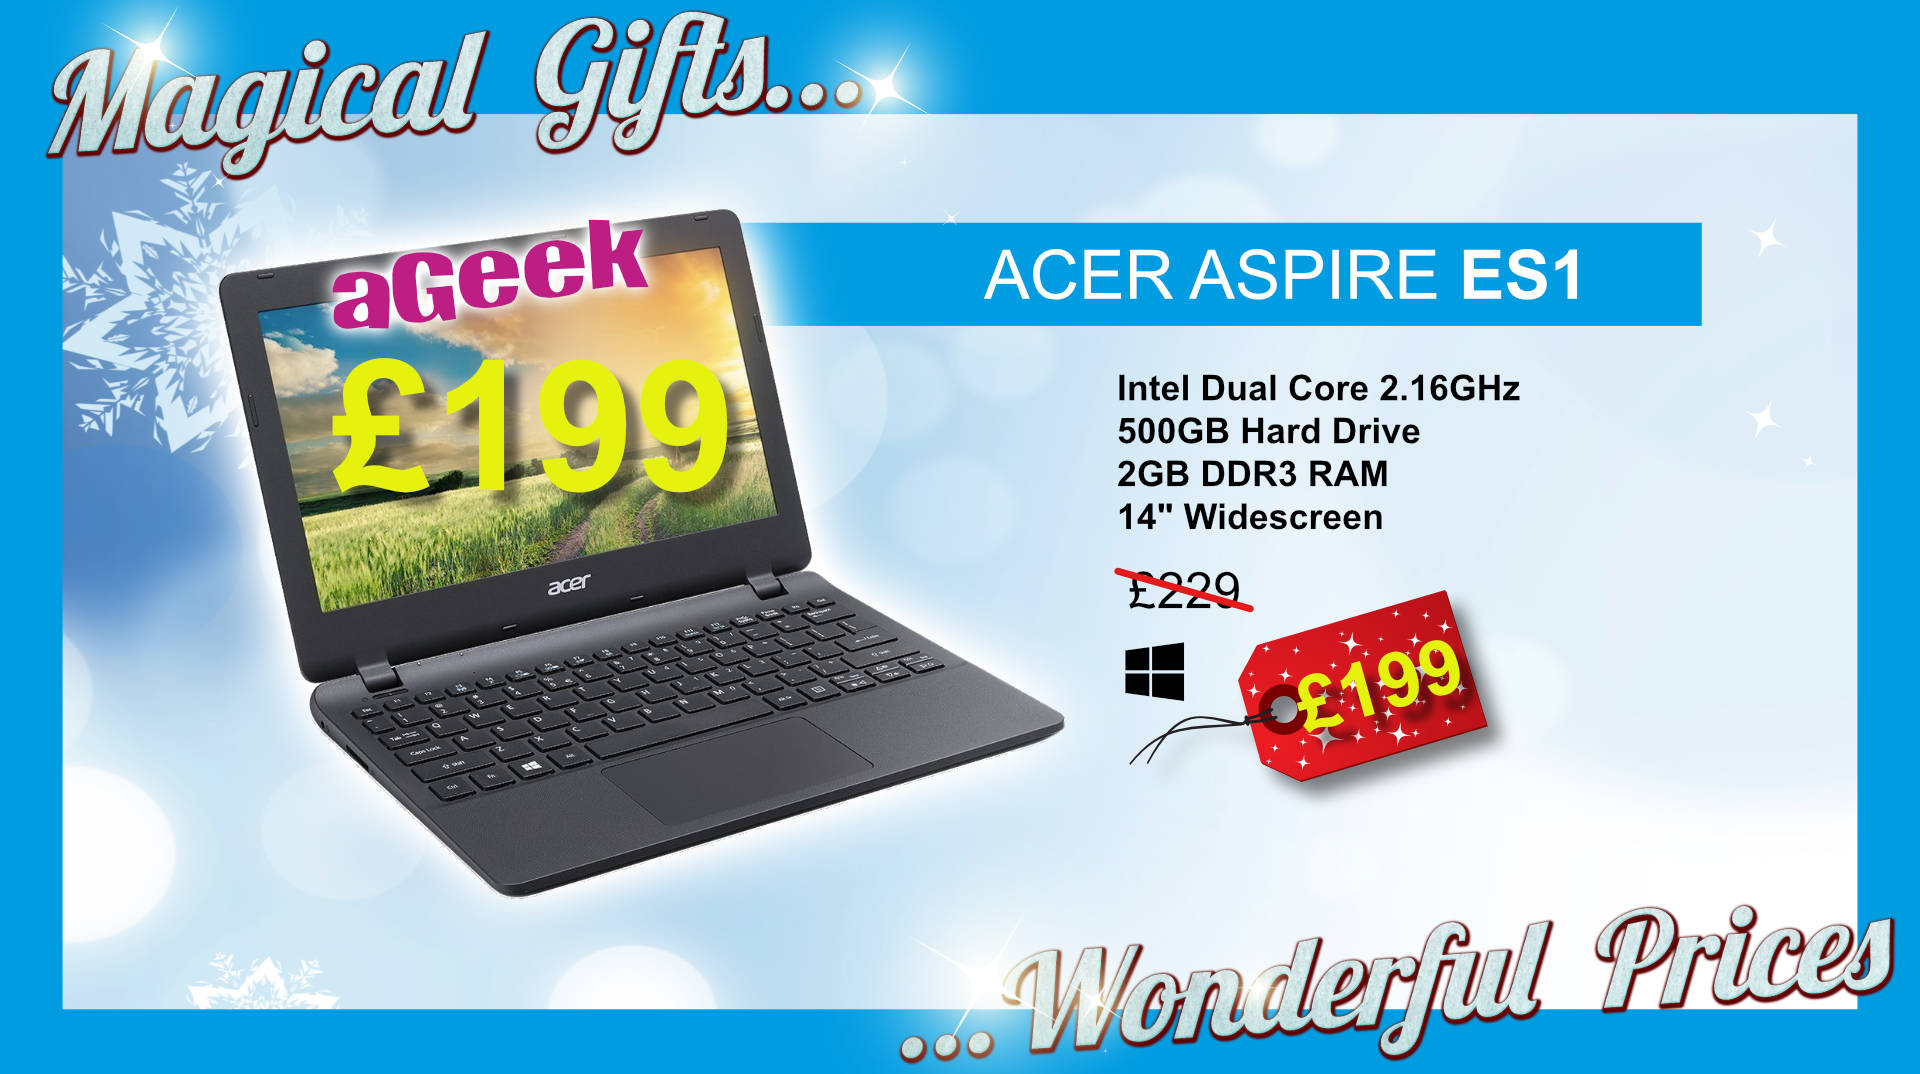 acer-aspire-es1-laptop-christmas-2016-ageek-chesterfield